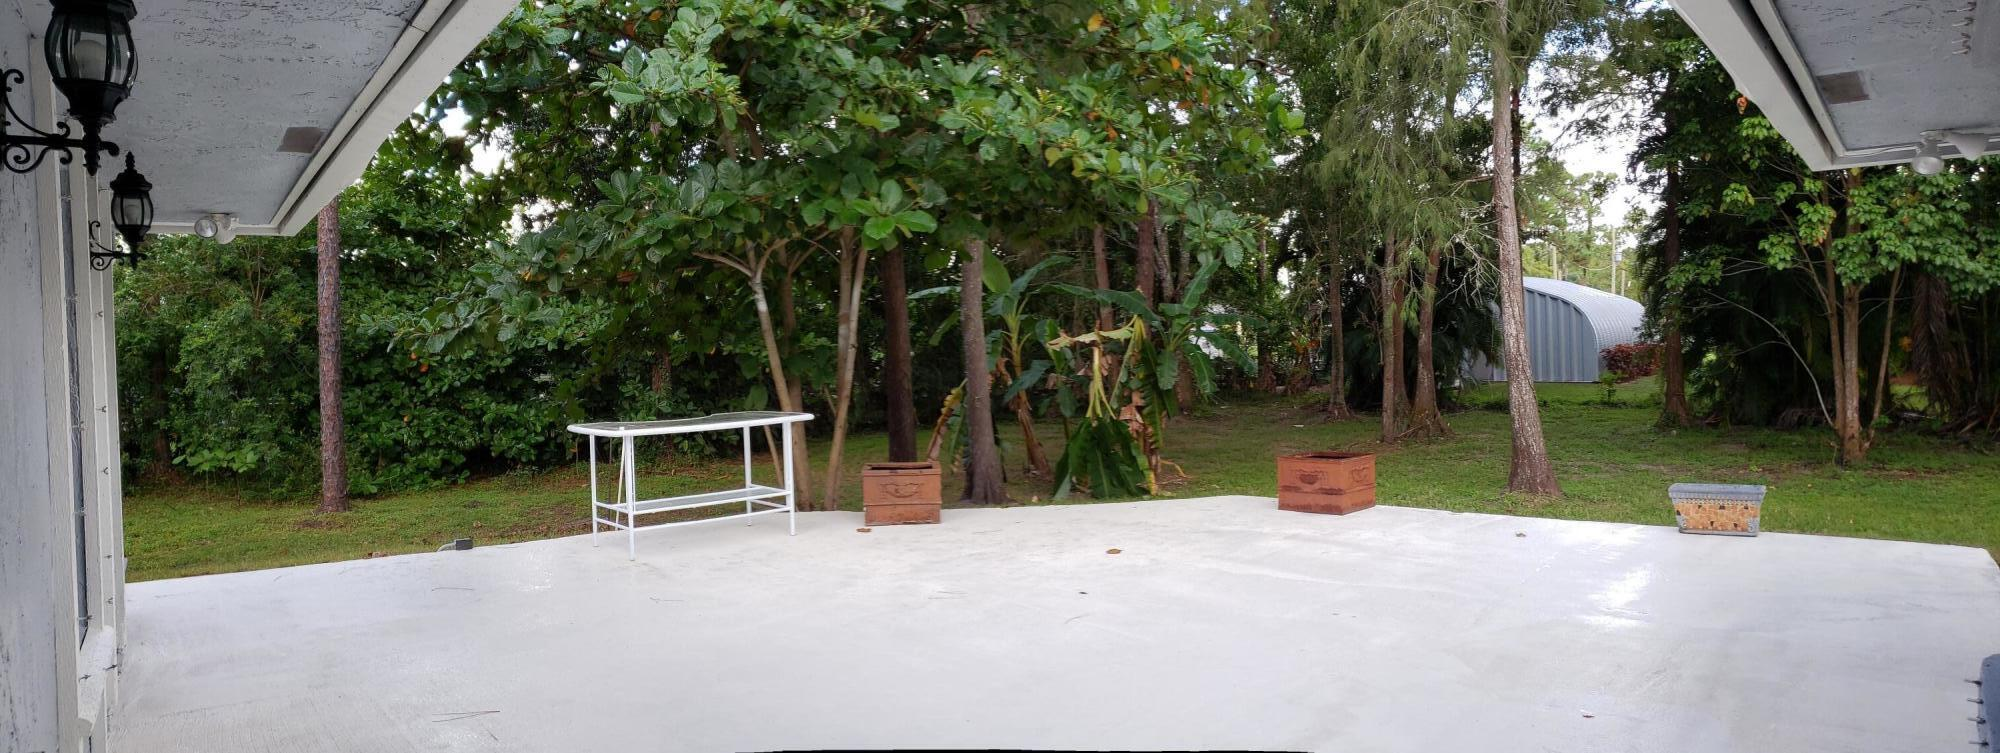 View of Yard-NO POND